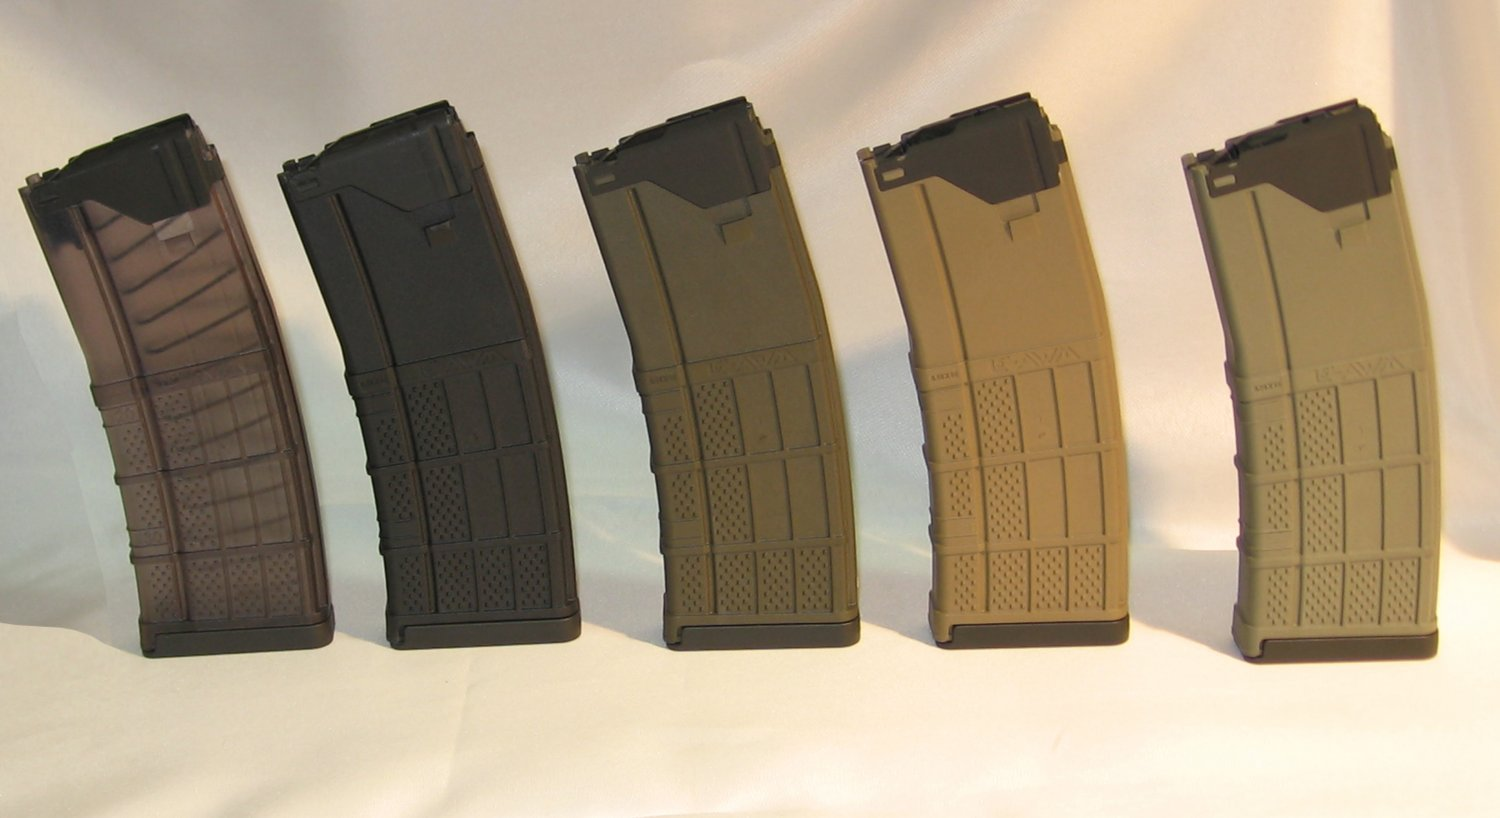 Lancer Systems L5 Advanced Warfighter Magazine L5 AWM 3 <!  :en  >Lancer Systems L5 Advanced Warfighter Magazine (Lancer L5 AWM) 30 Round 5.56mm NATO Translucent Polymer AR Mag (AR 15/M16 Rifle Magazine) to Debut at SHOT Show 2011  <!  :  >